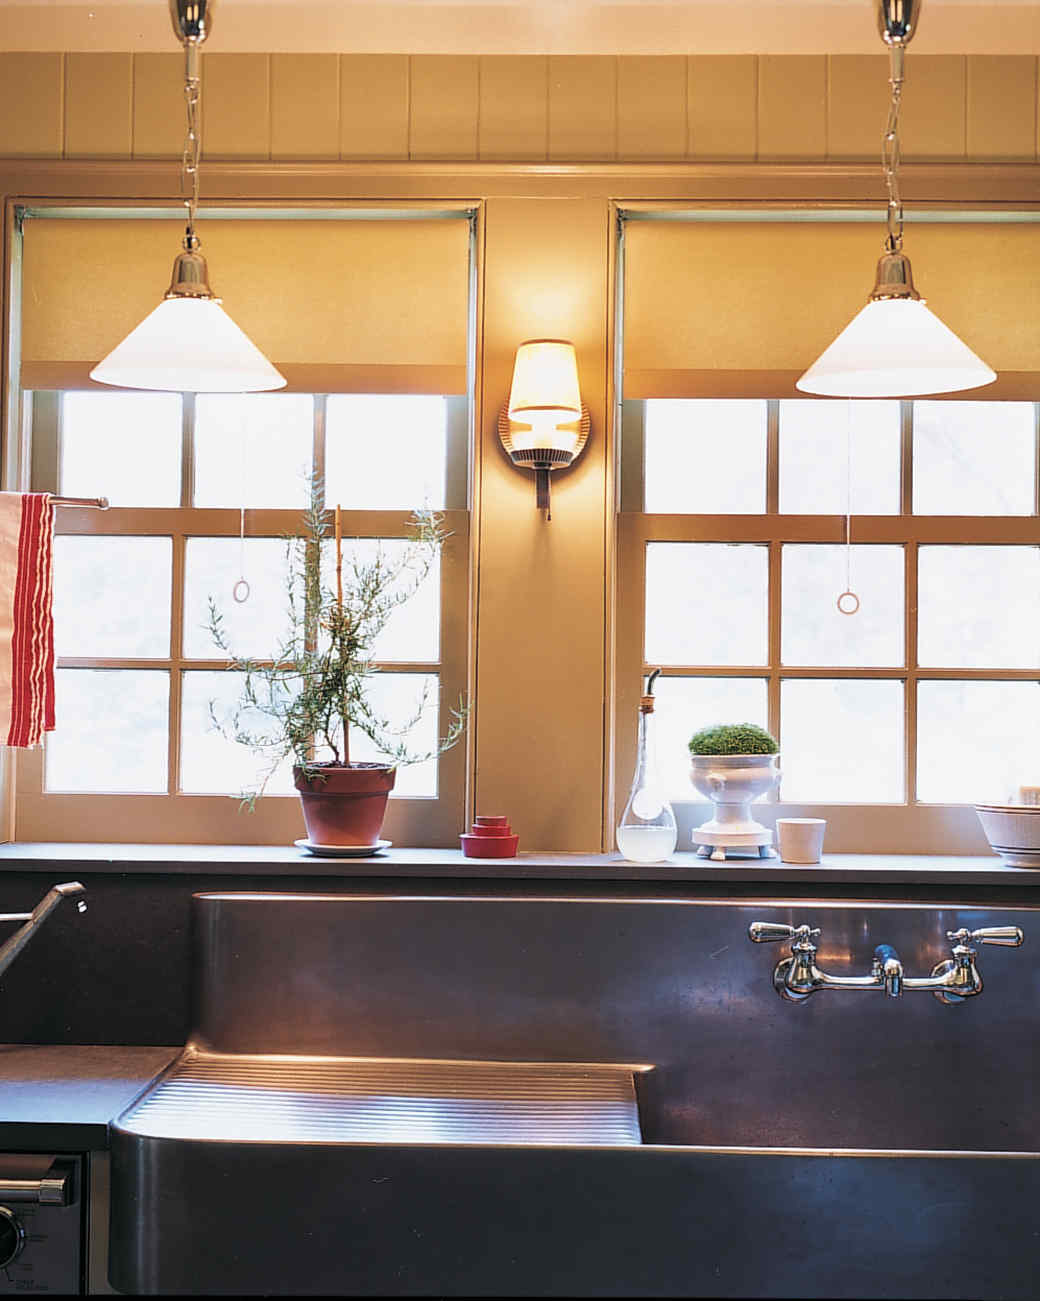 Delightful 6 Bright Kitchen Lighting Ideas: See How New Fixtures Totally Transformed  These Spaces | Martha Stewart